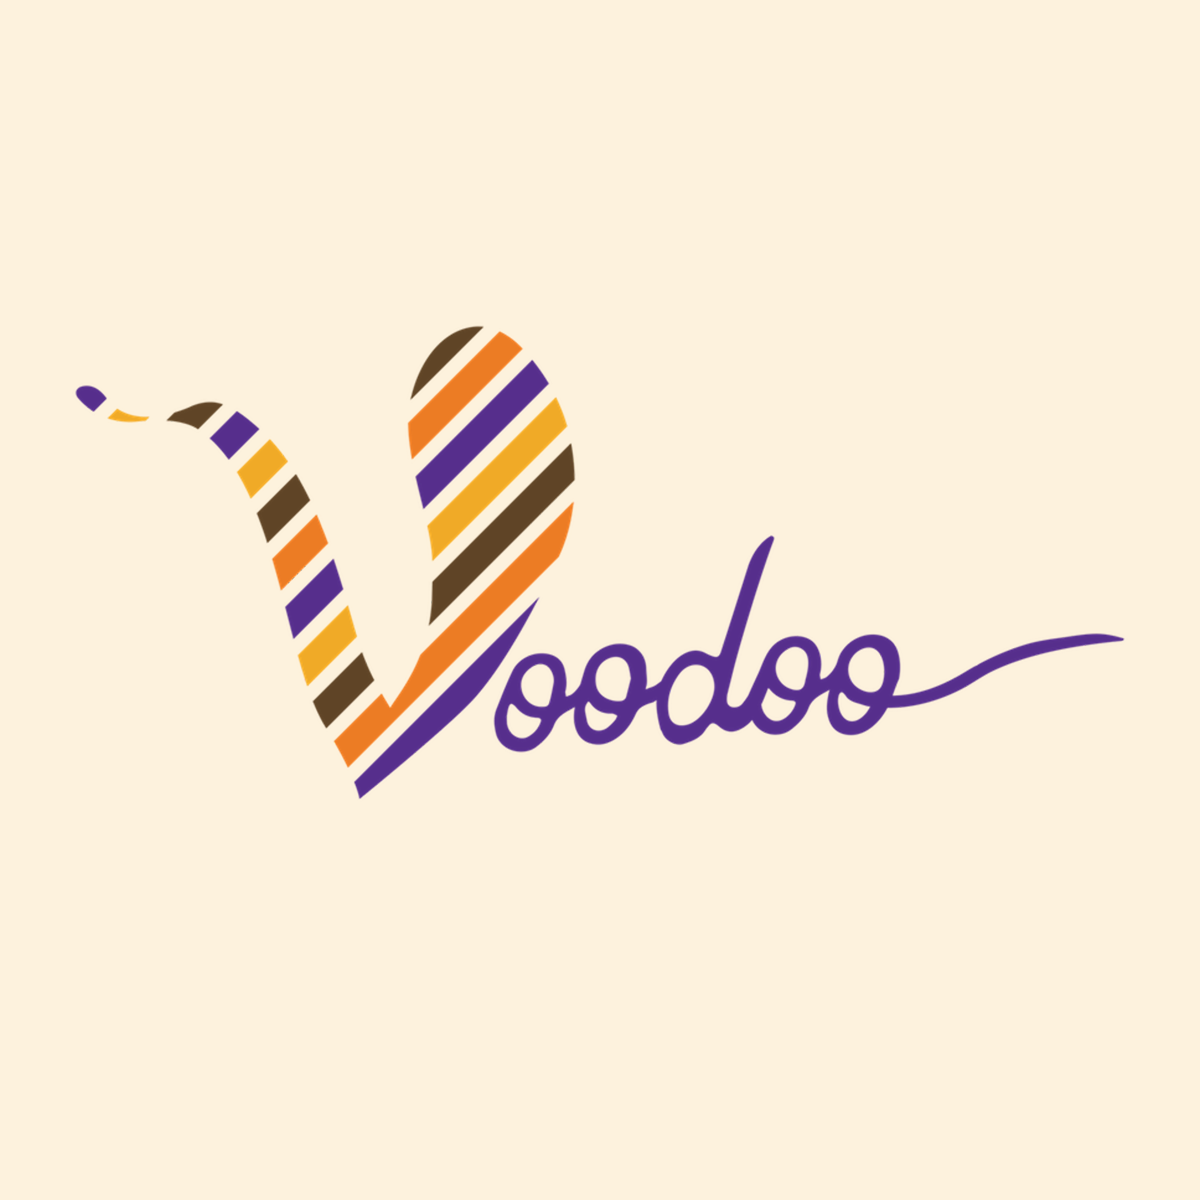 Created by the masterminds of adult toys for over 15 years, Voodoo is a company which stands for sex positivity, self exploration and sexual freedom.